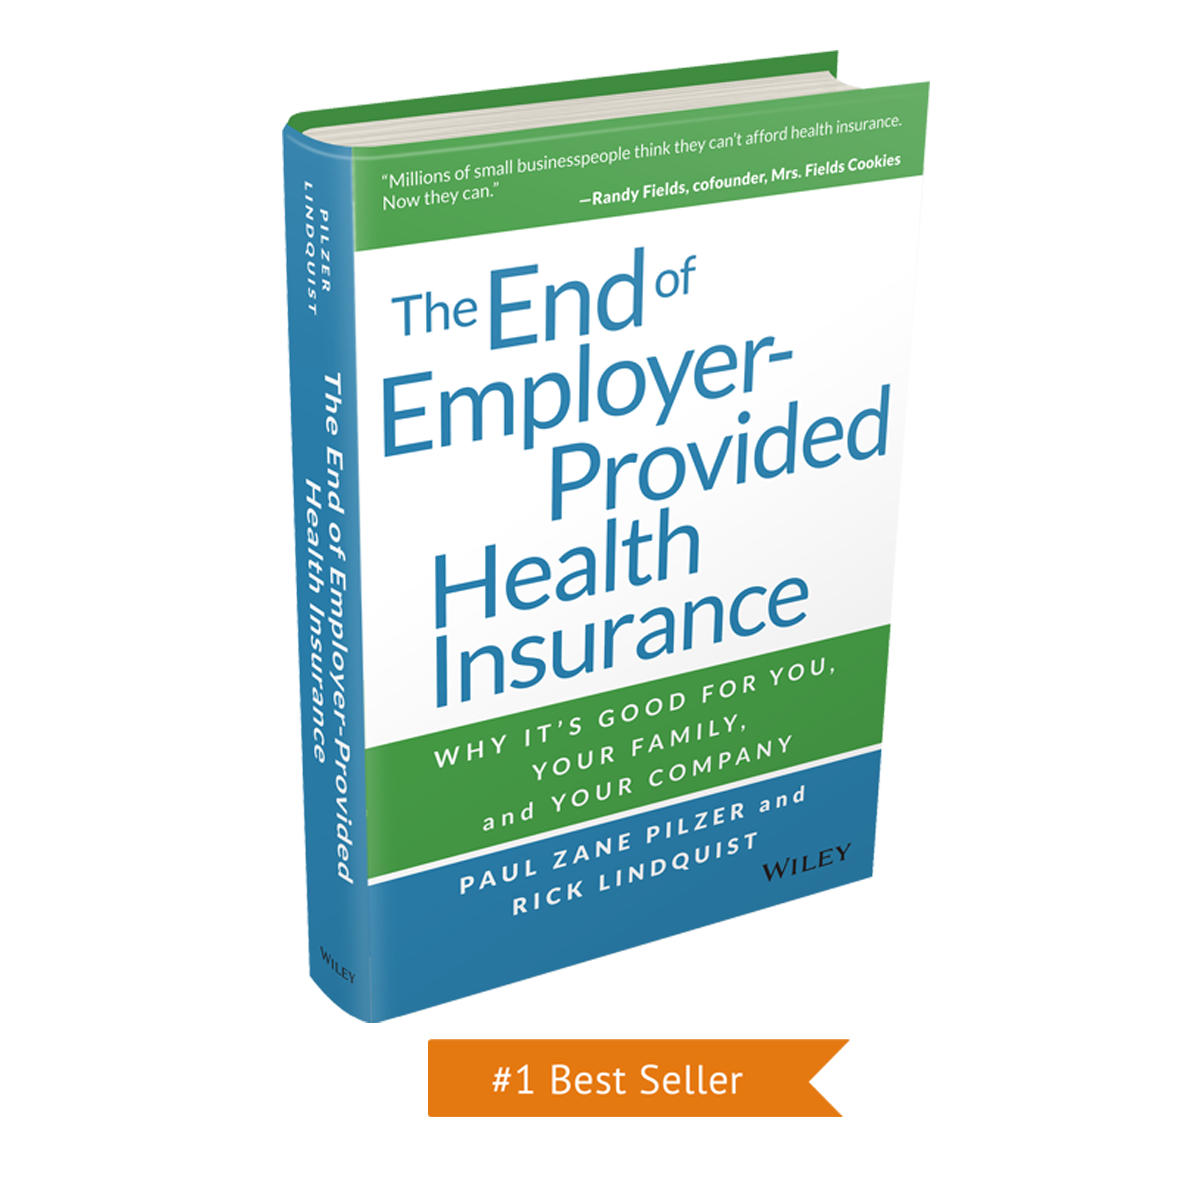 New Book on Health Insurance